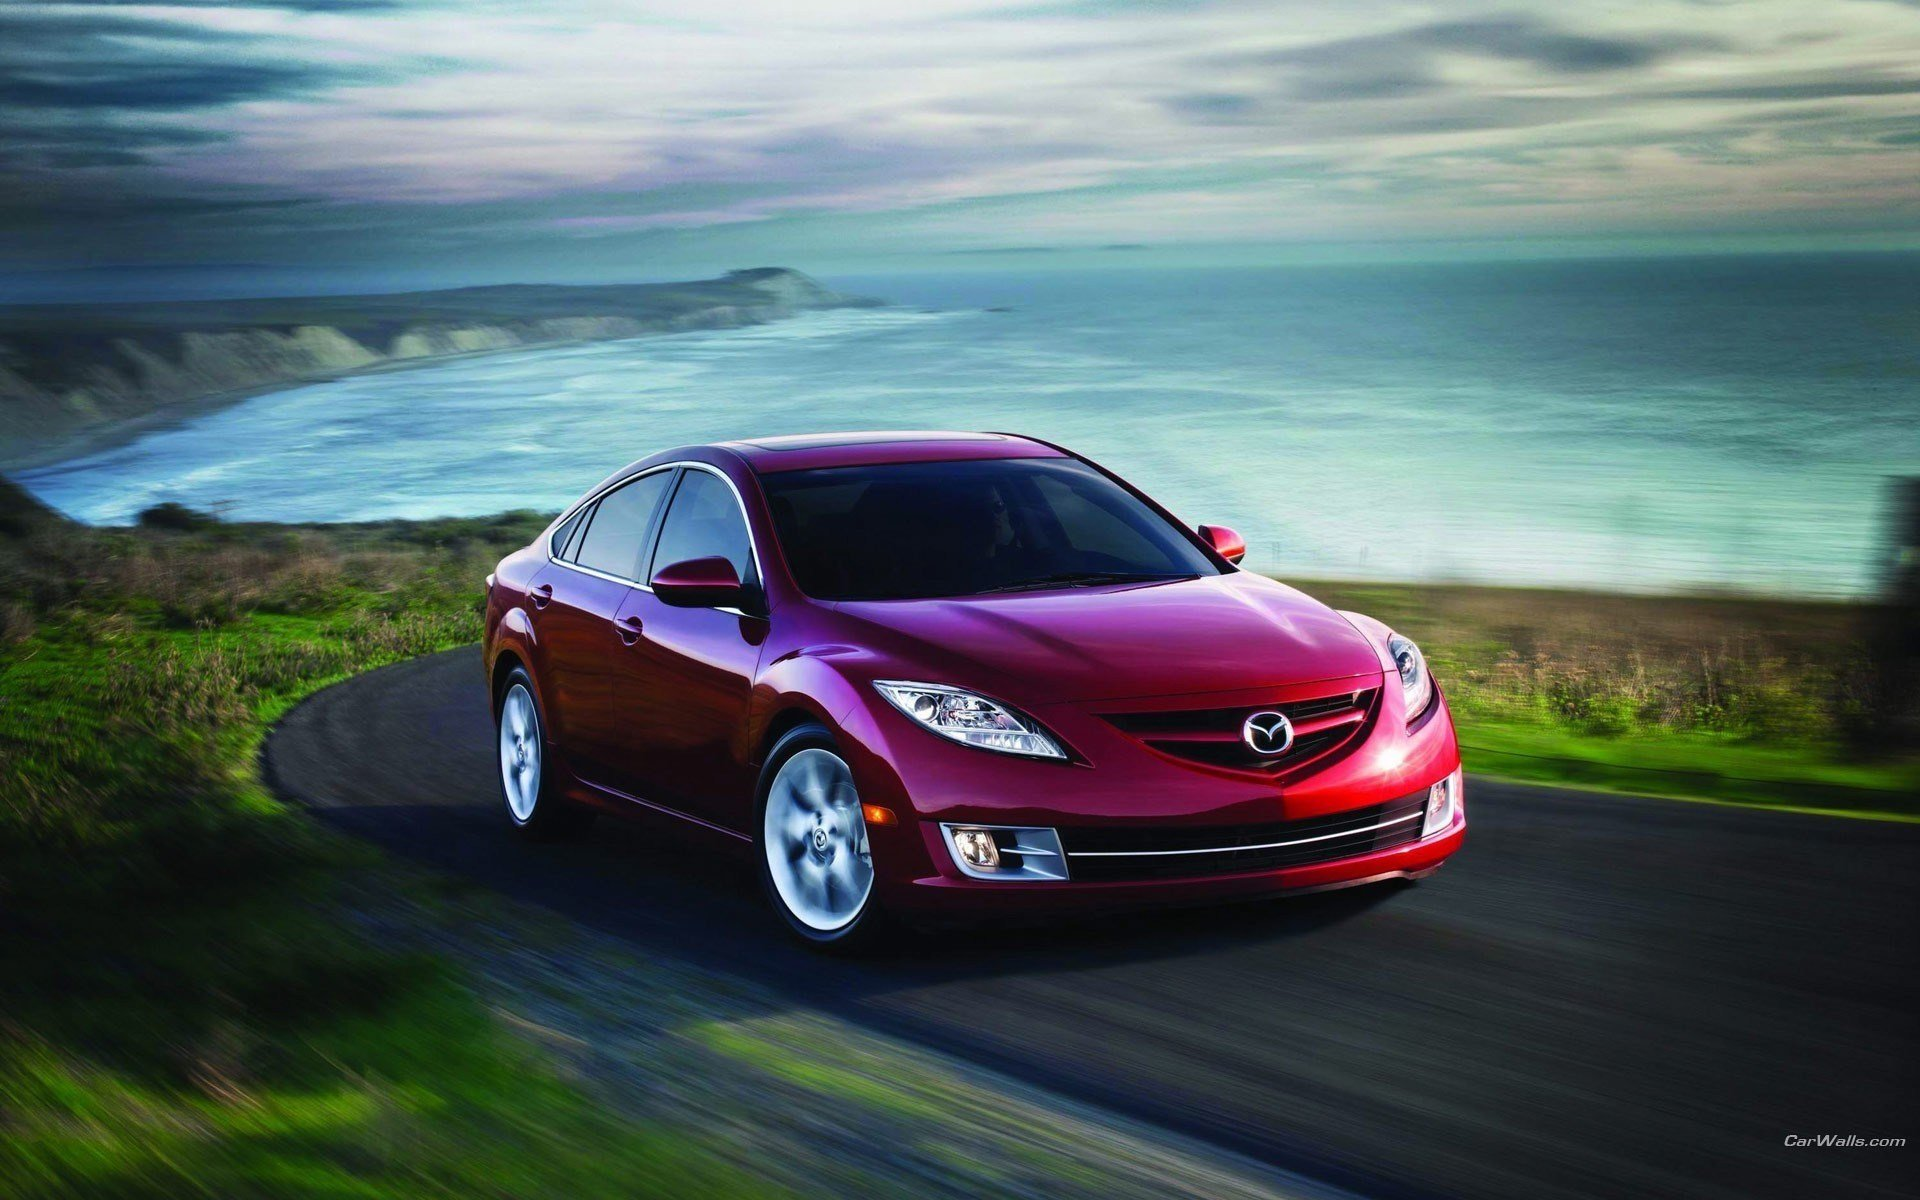 Latest Mazda 6 Automotive Cars Wallpaper Allwallpaper In 1167 Free Download